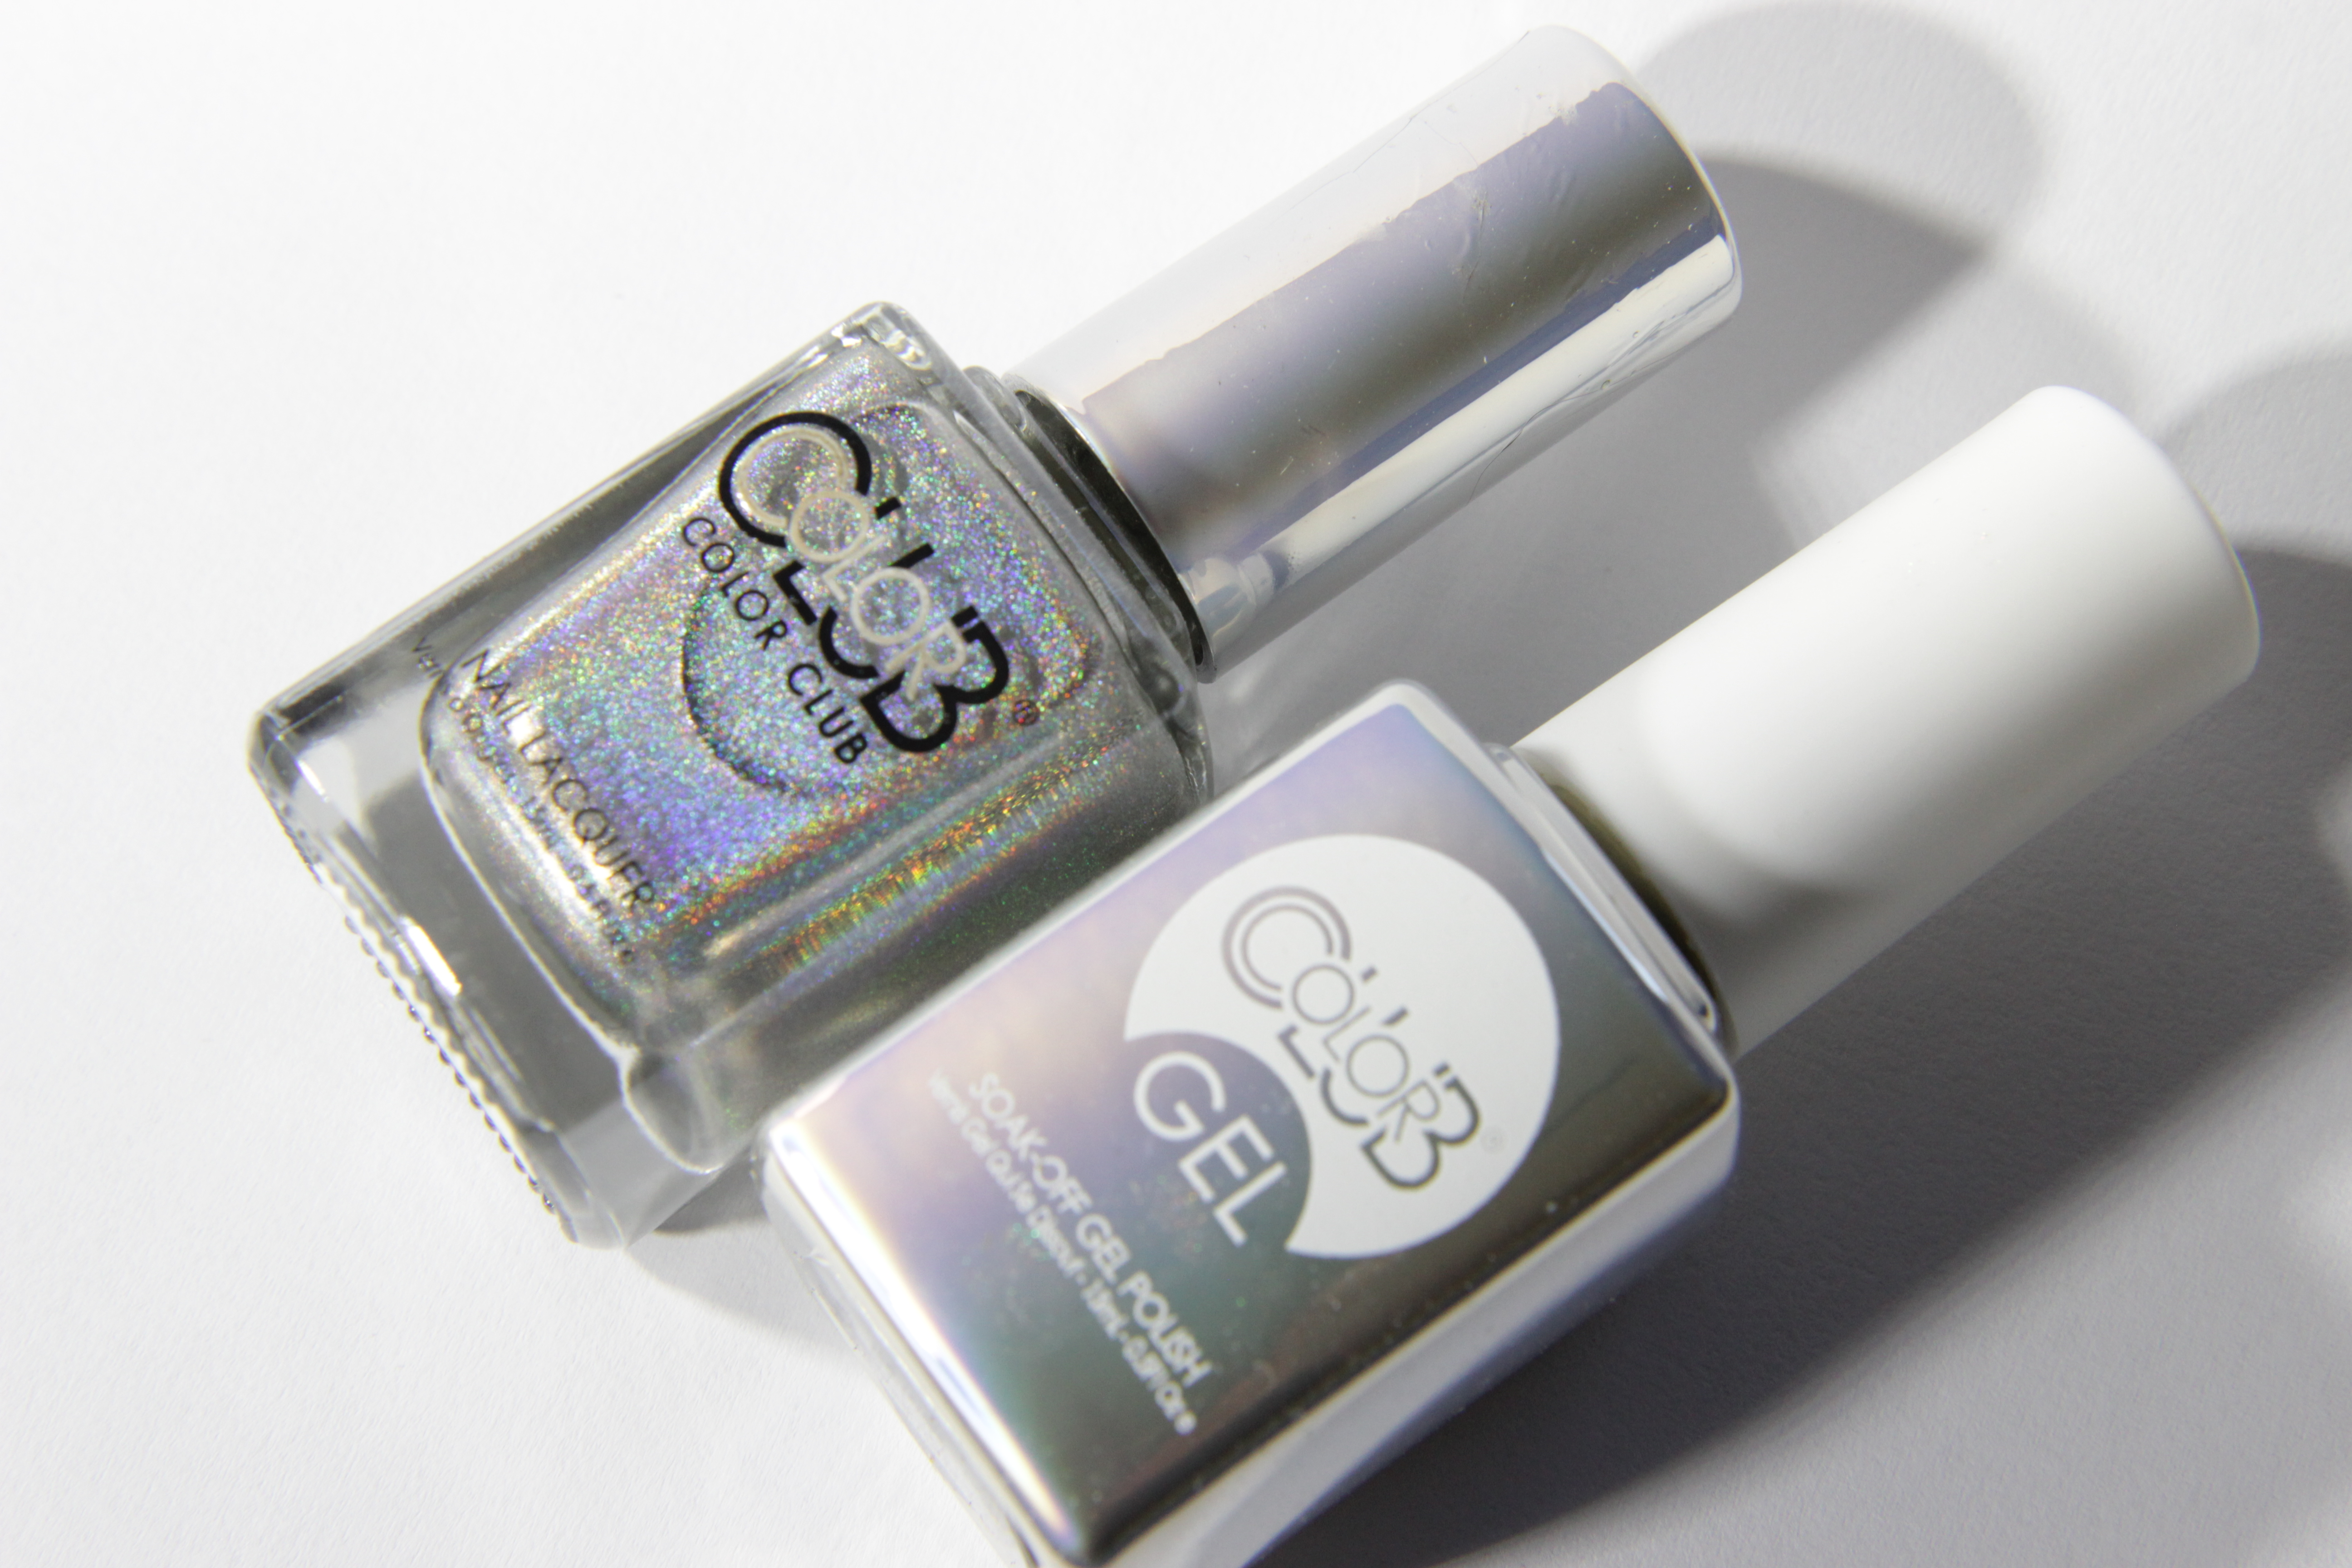 #0976 HARP ON IT Color Club Duo Nagellack Nail Lacquer and Soak-Off Gel Polish Chrom